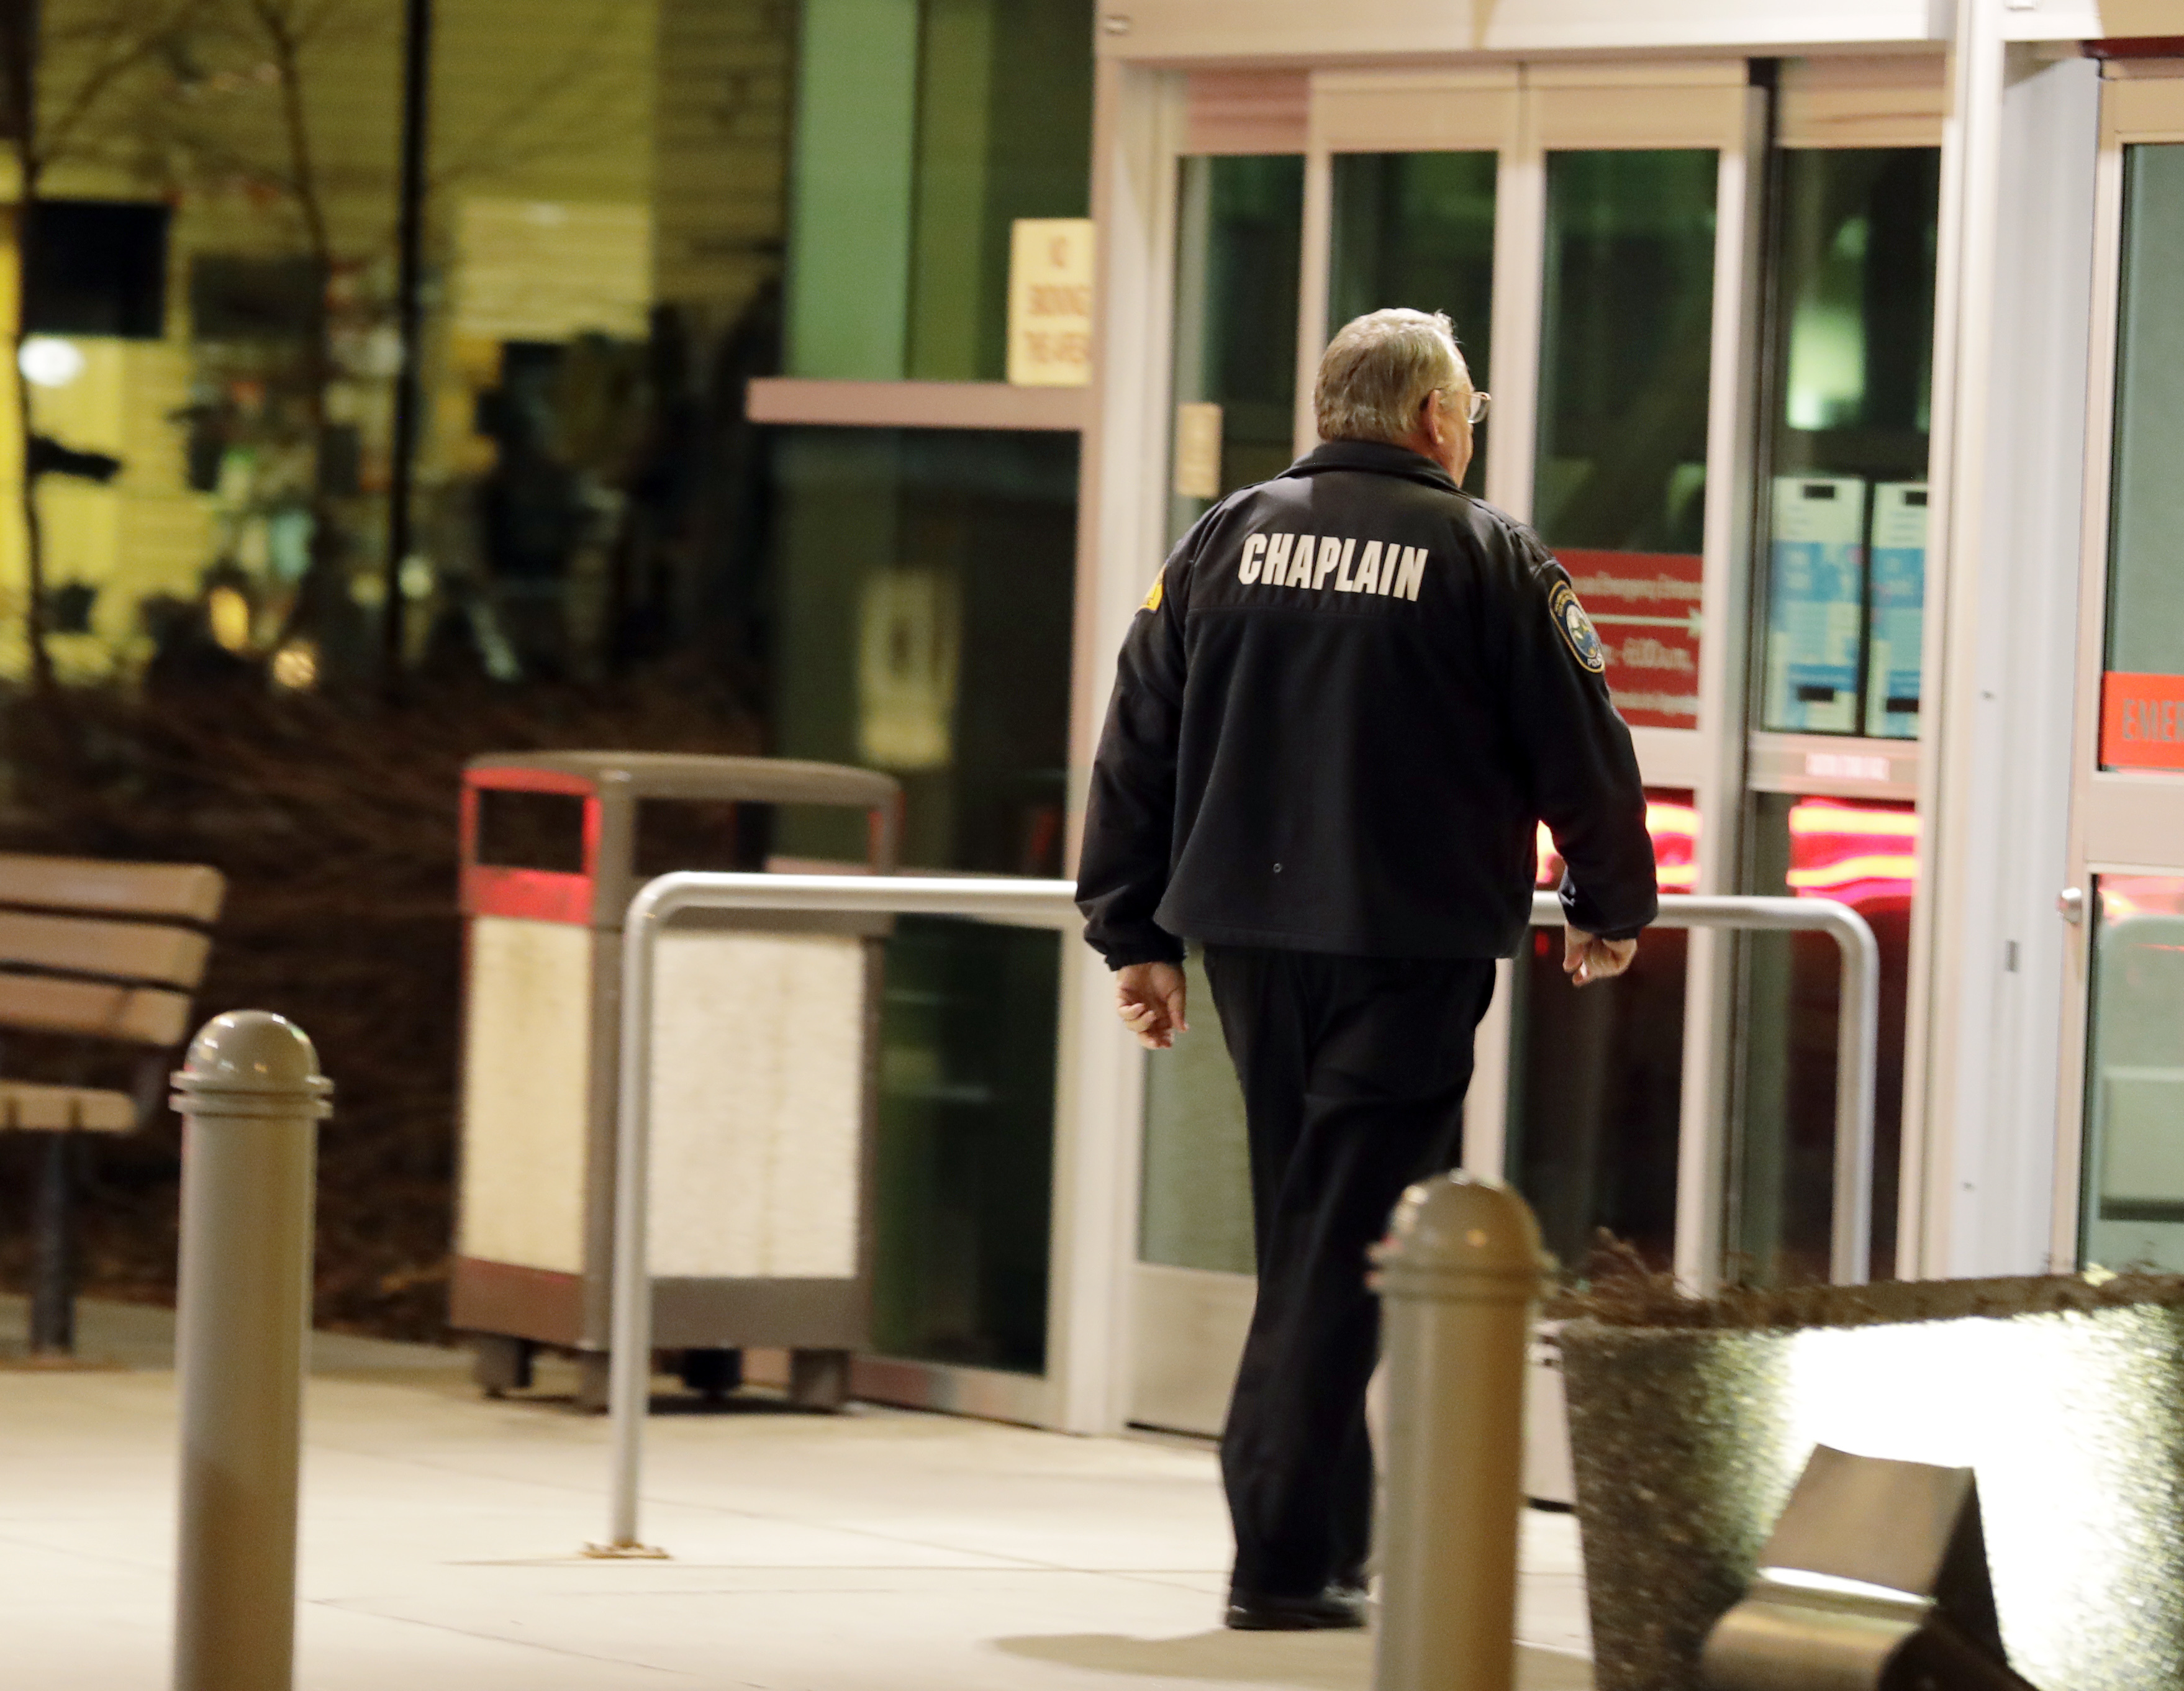 A law enforcement chaplain walks into Kittitas Valley Healthcare Hospital, in the late night hours of Tuesday, March 19, 2019, in Ellensburg, Wash., prior to a procession to accompany the body of a Kittitas County Sheriff's deputy away from the hospital. A Kittitas County Sheriff's deputy was killed and a police officer was injured after an exchange of gunfire during an attempted traffic stop. (AP Photo/Ted S. Warren)